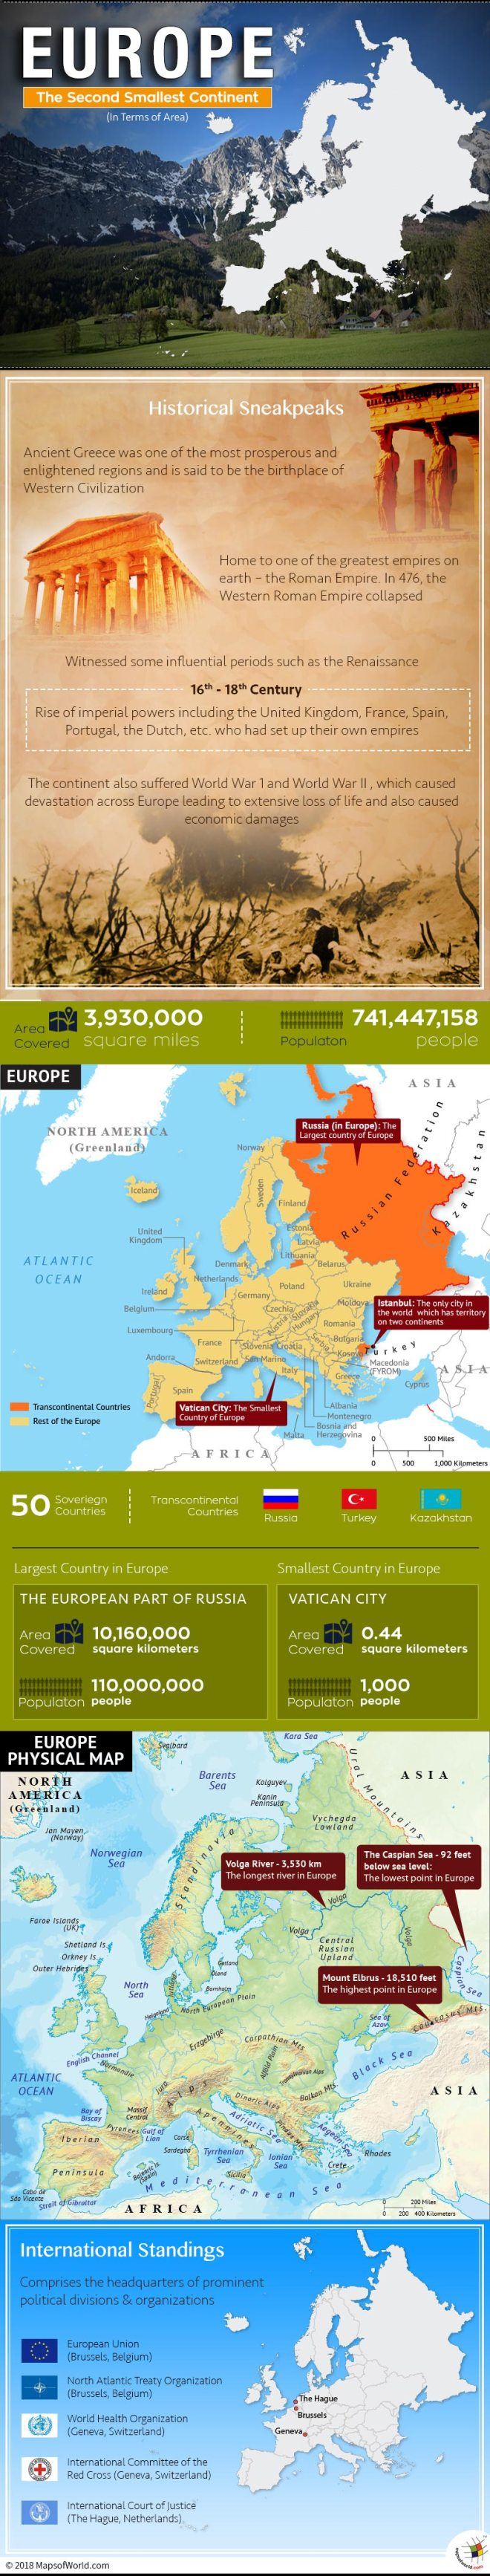 Infographic elaborating facts about Europe